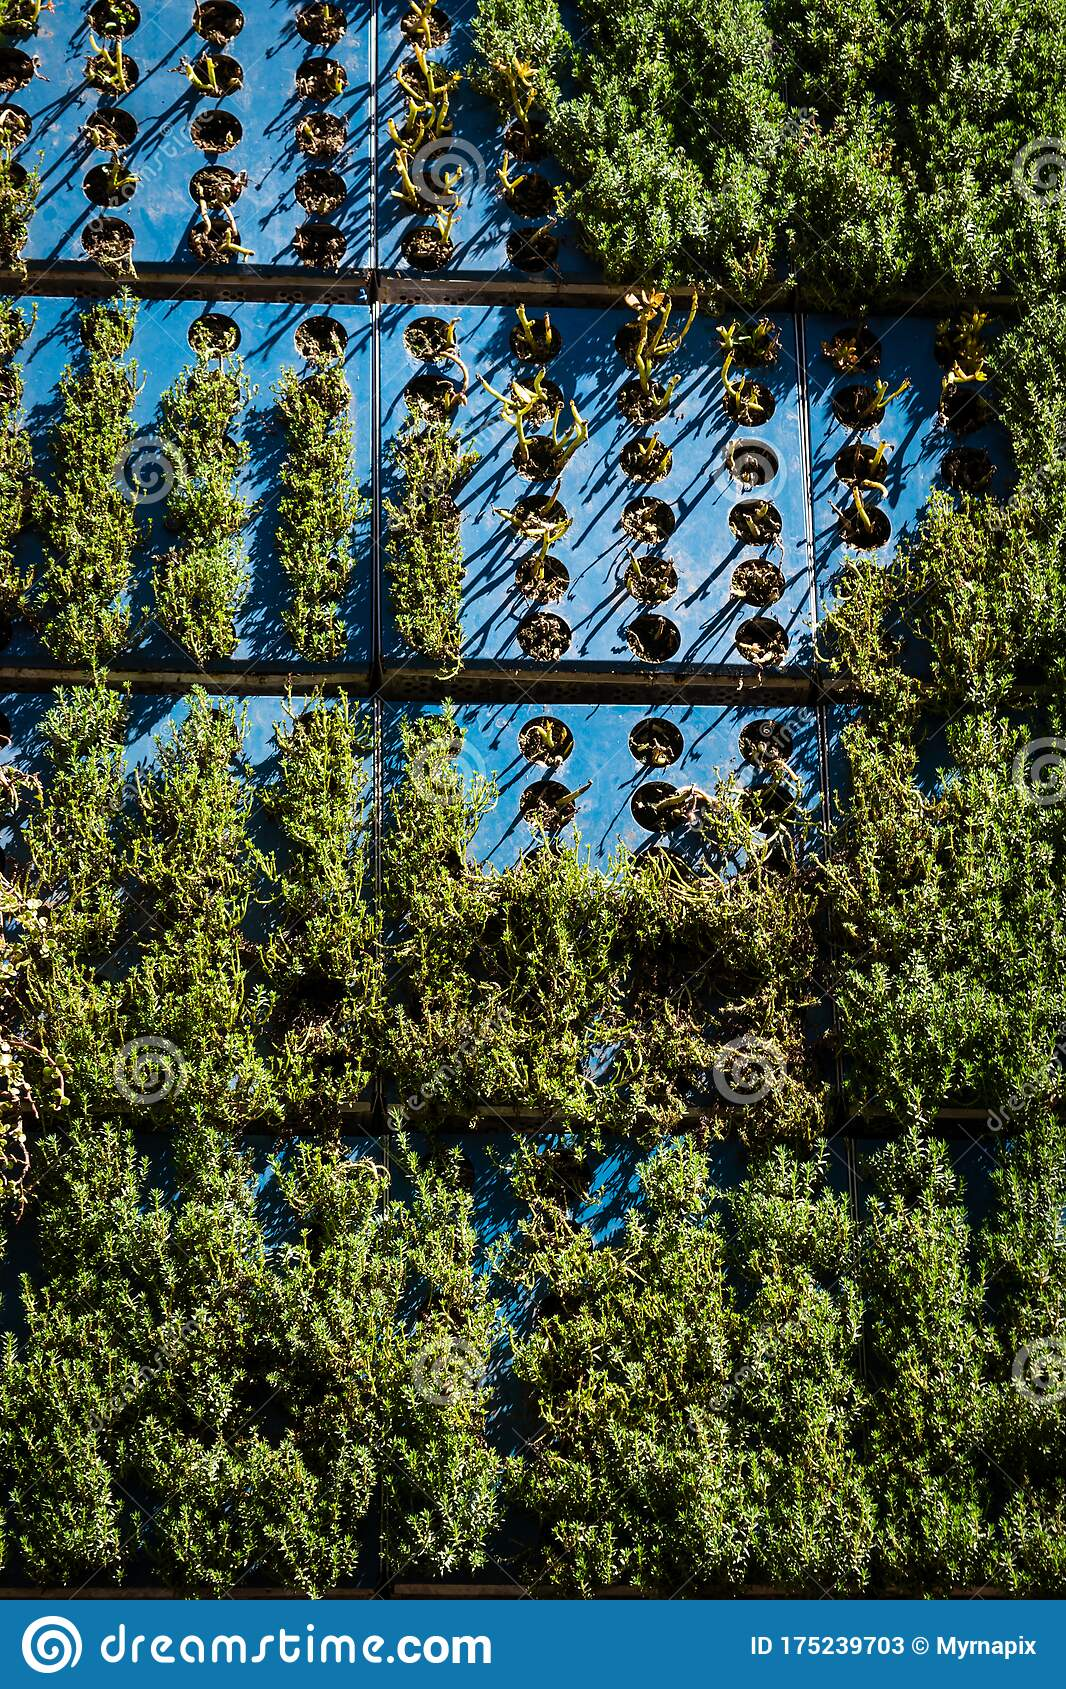 Outdoor Wall Garden With Succuleet Plants Stock Image Image Of Wall Gardening 175239703